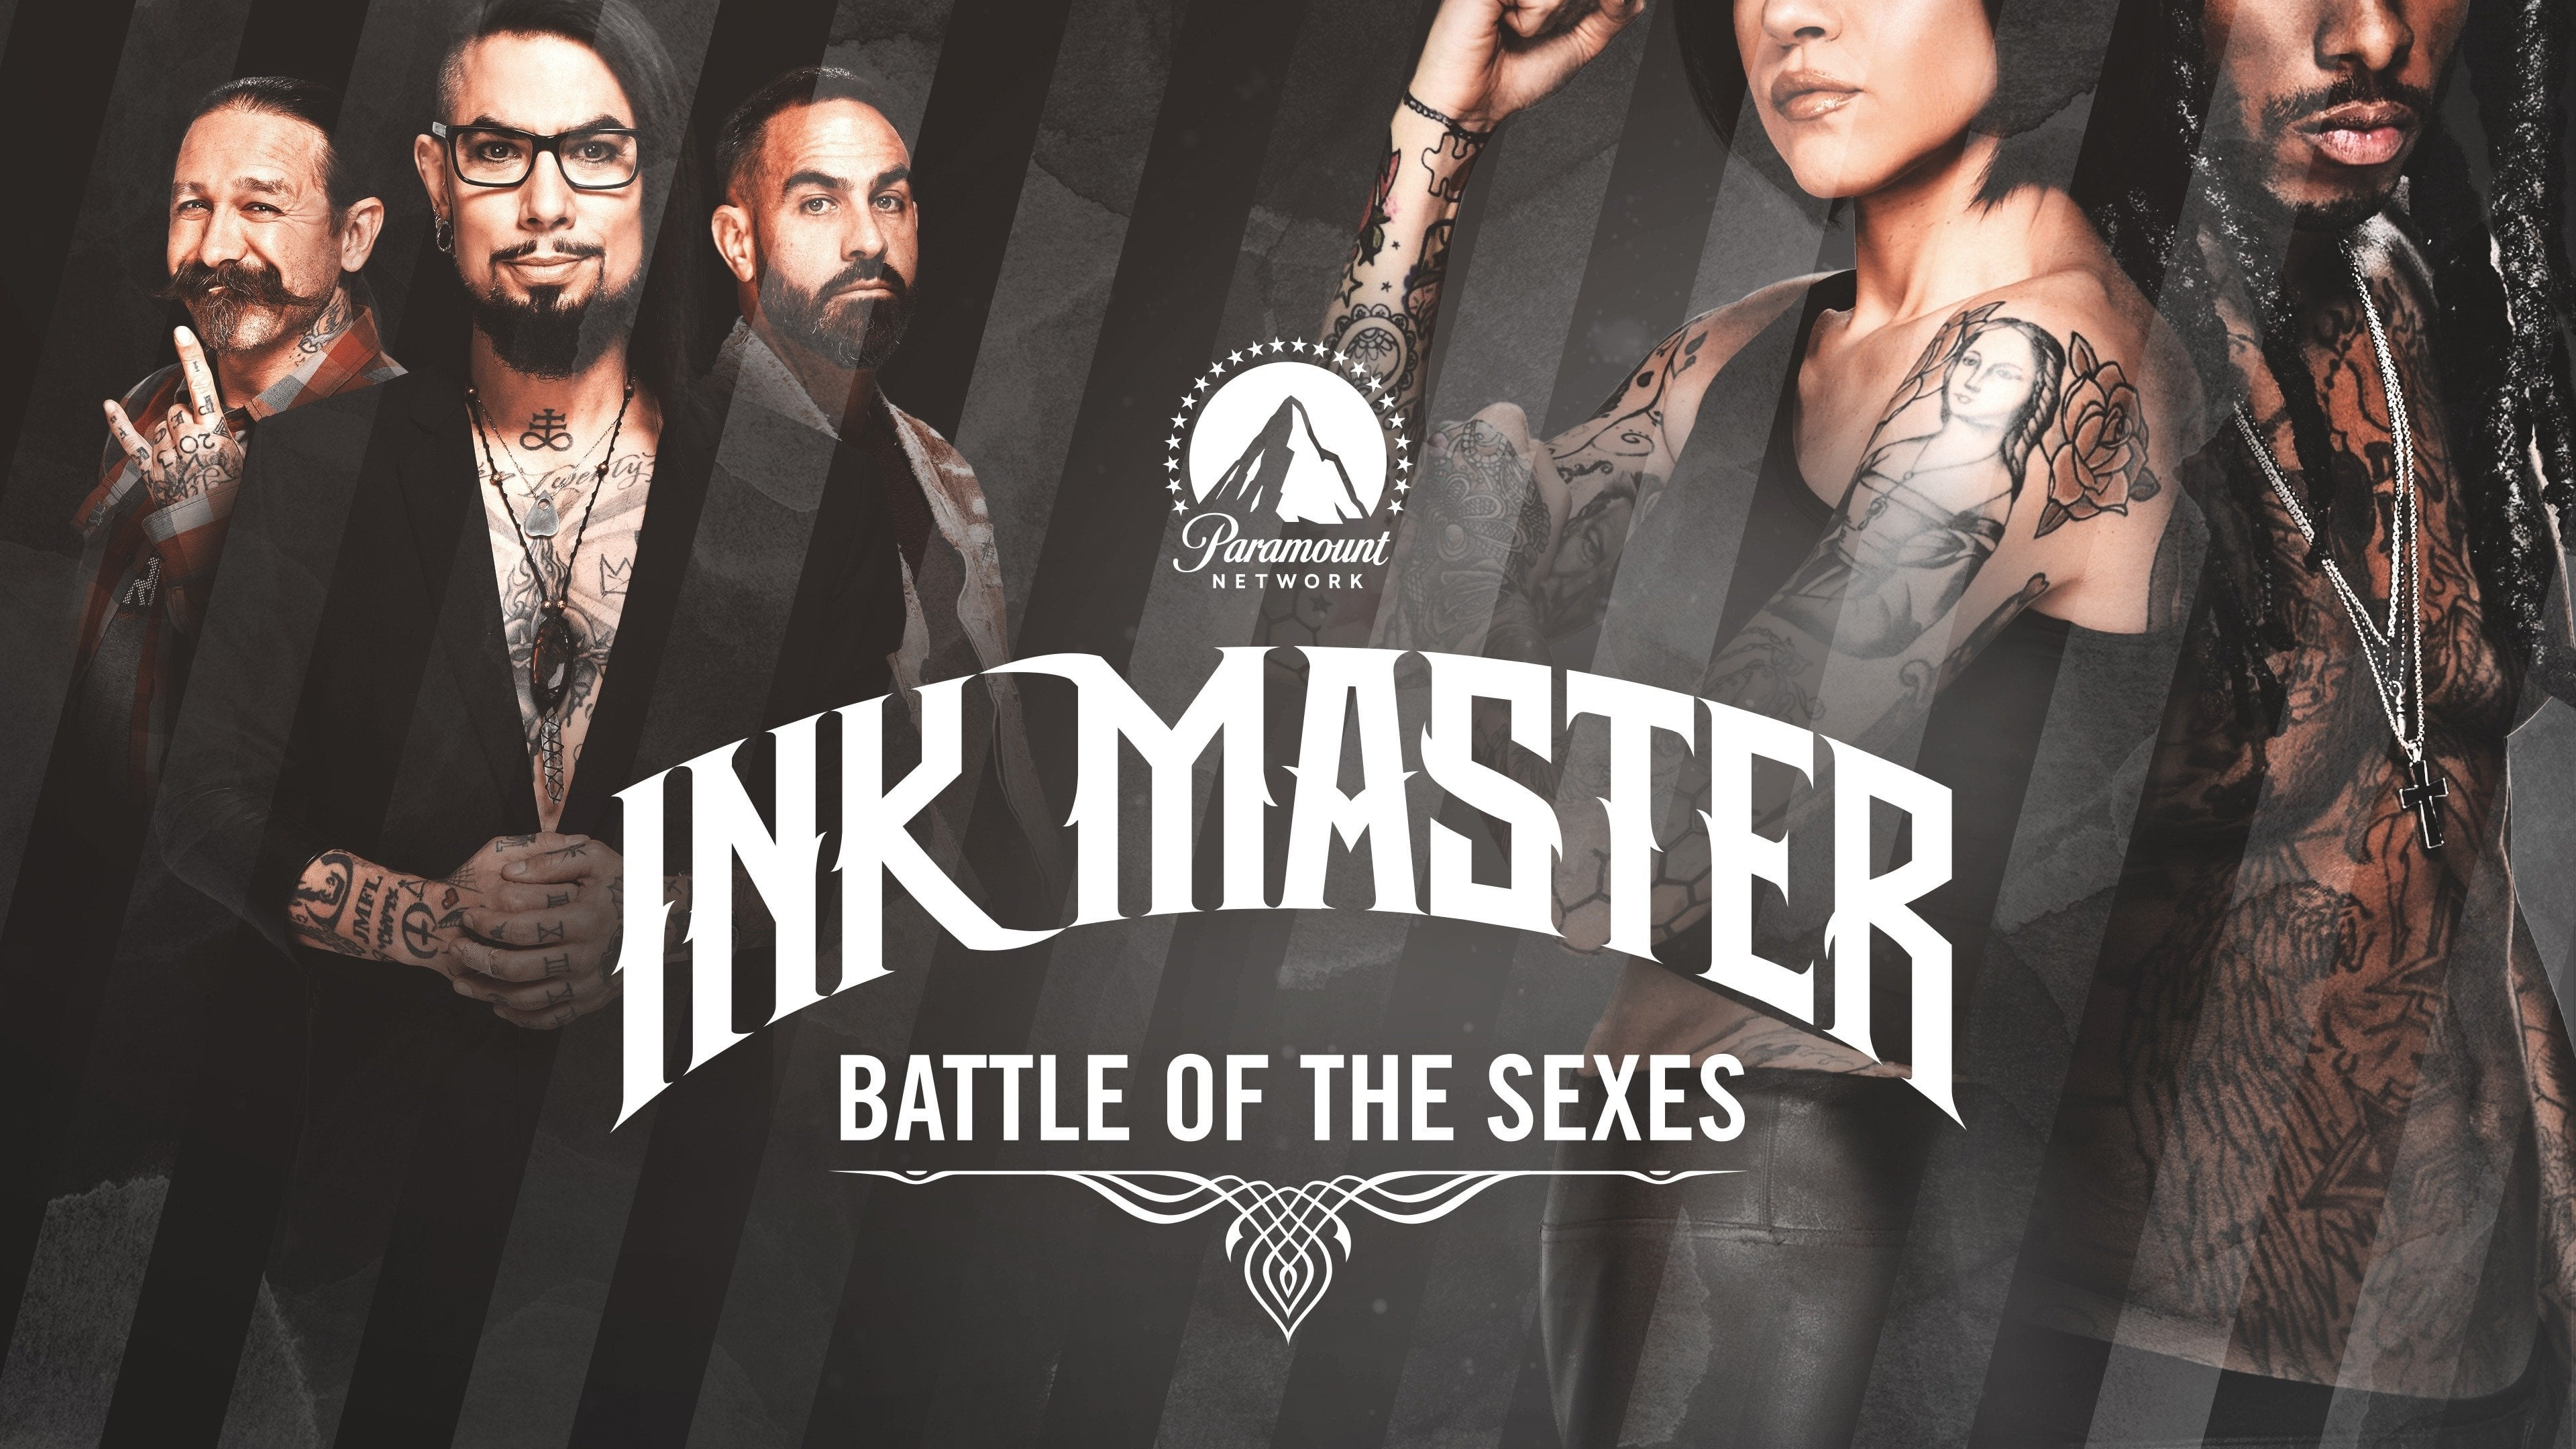 Streamthis Ink Master